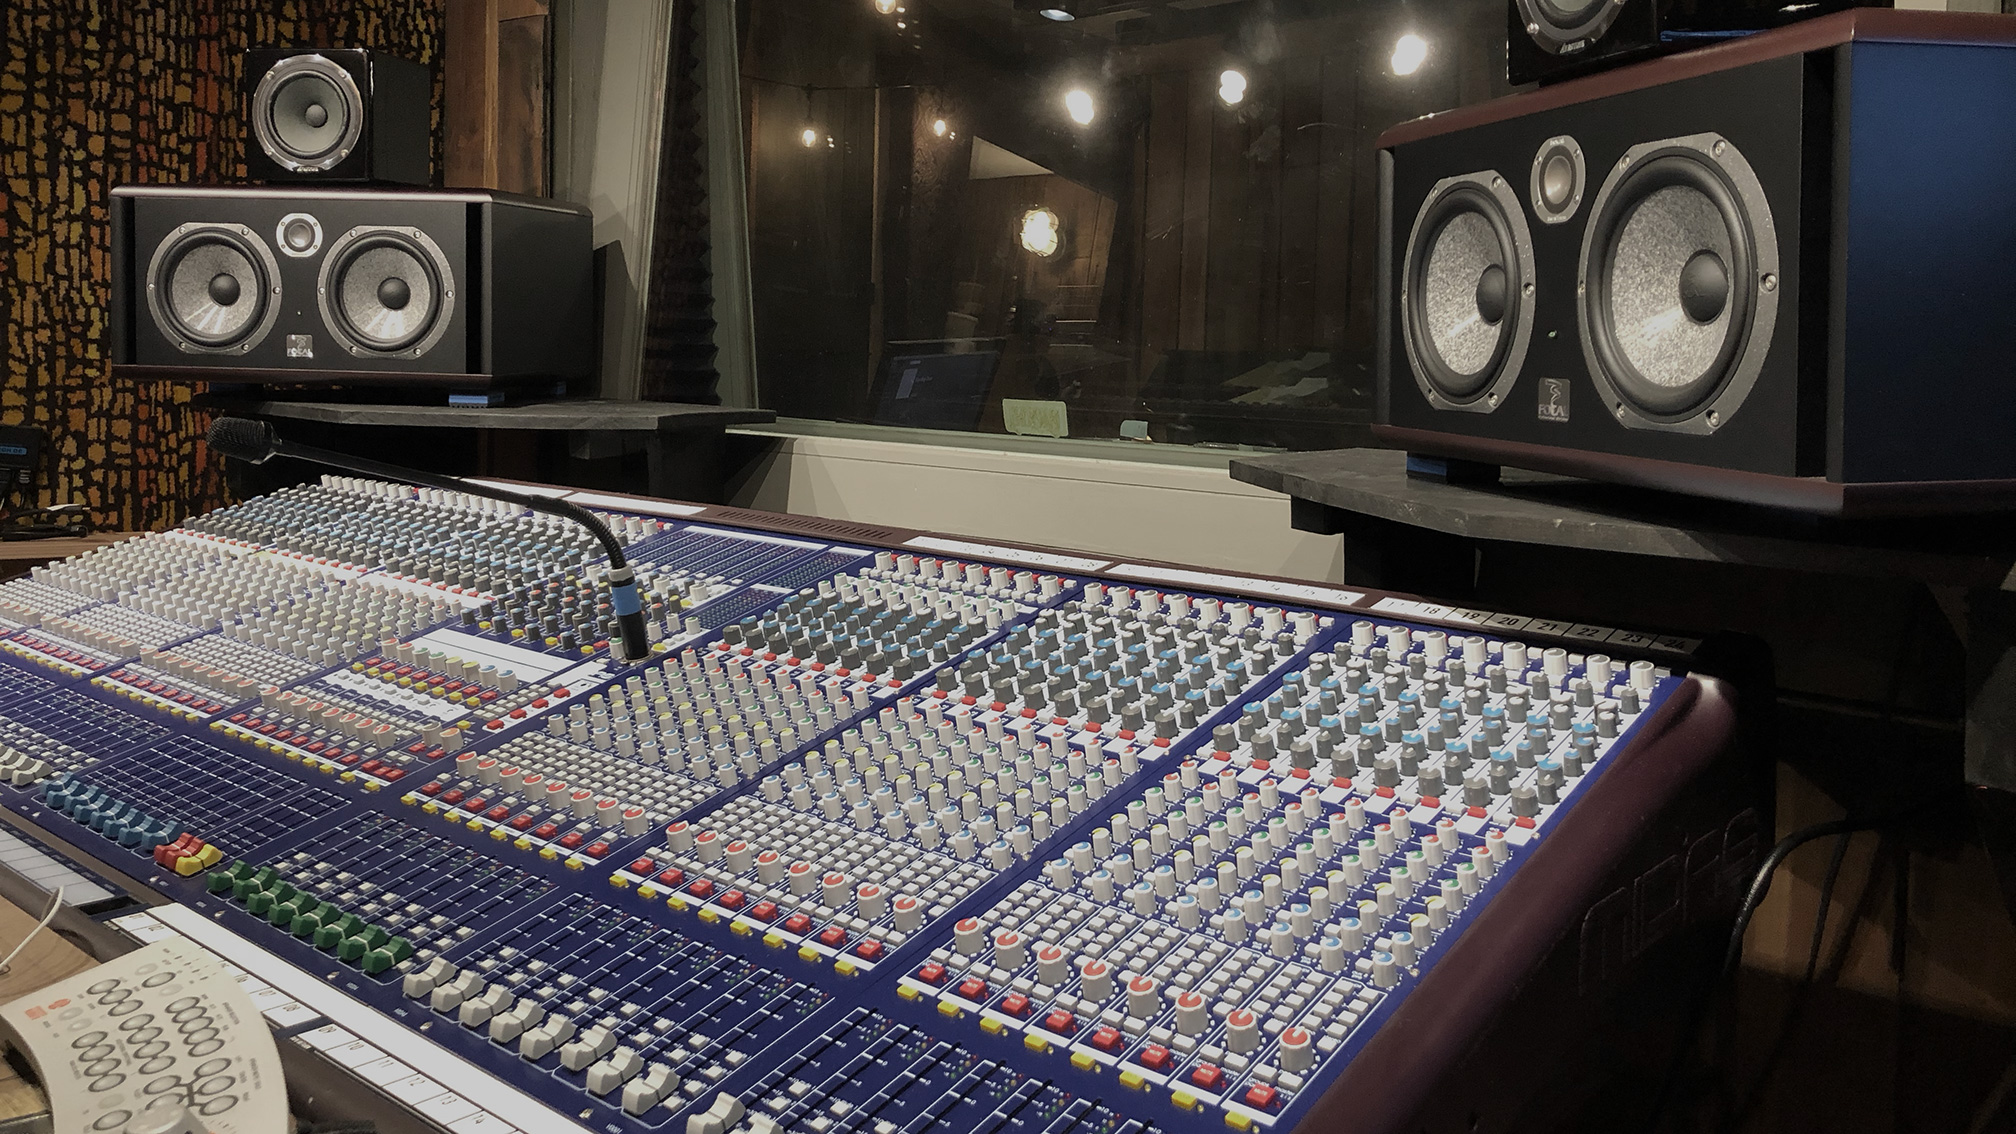 The Midas Verona Console with the Focal Twin B monitors